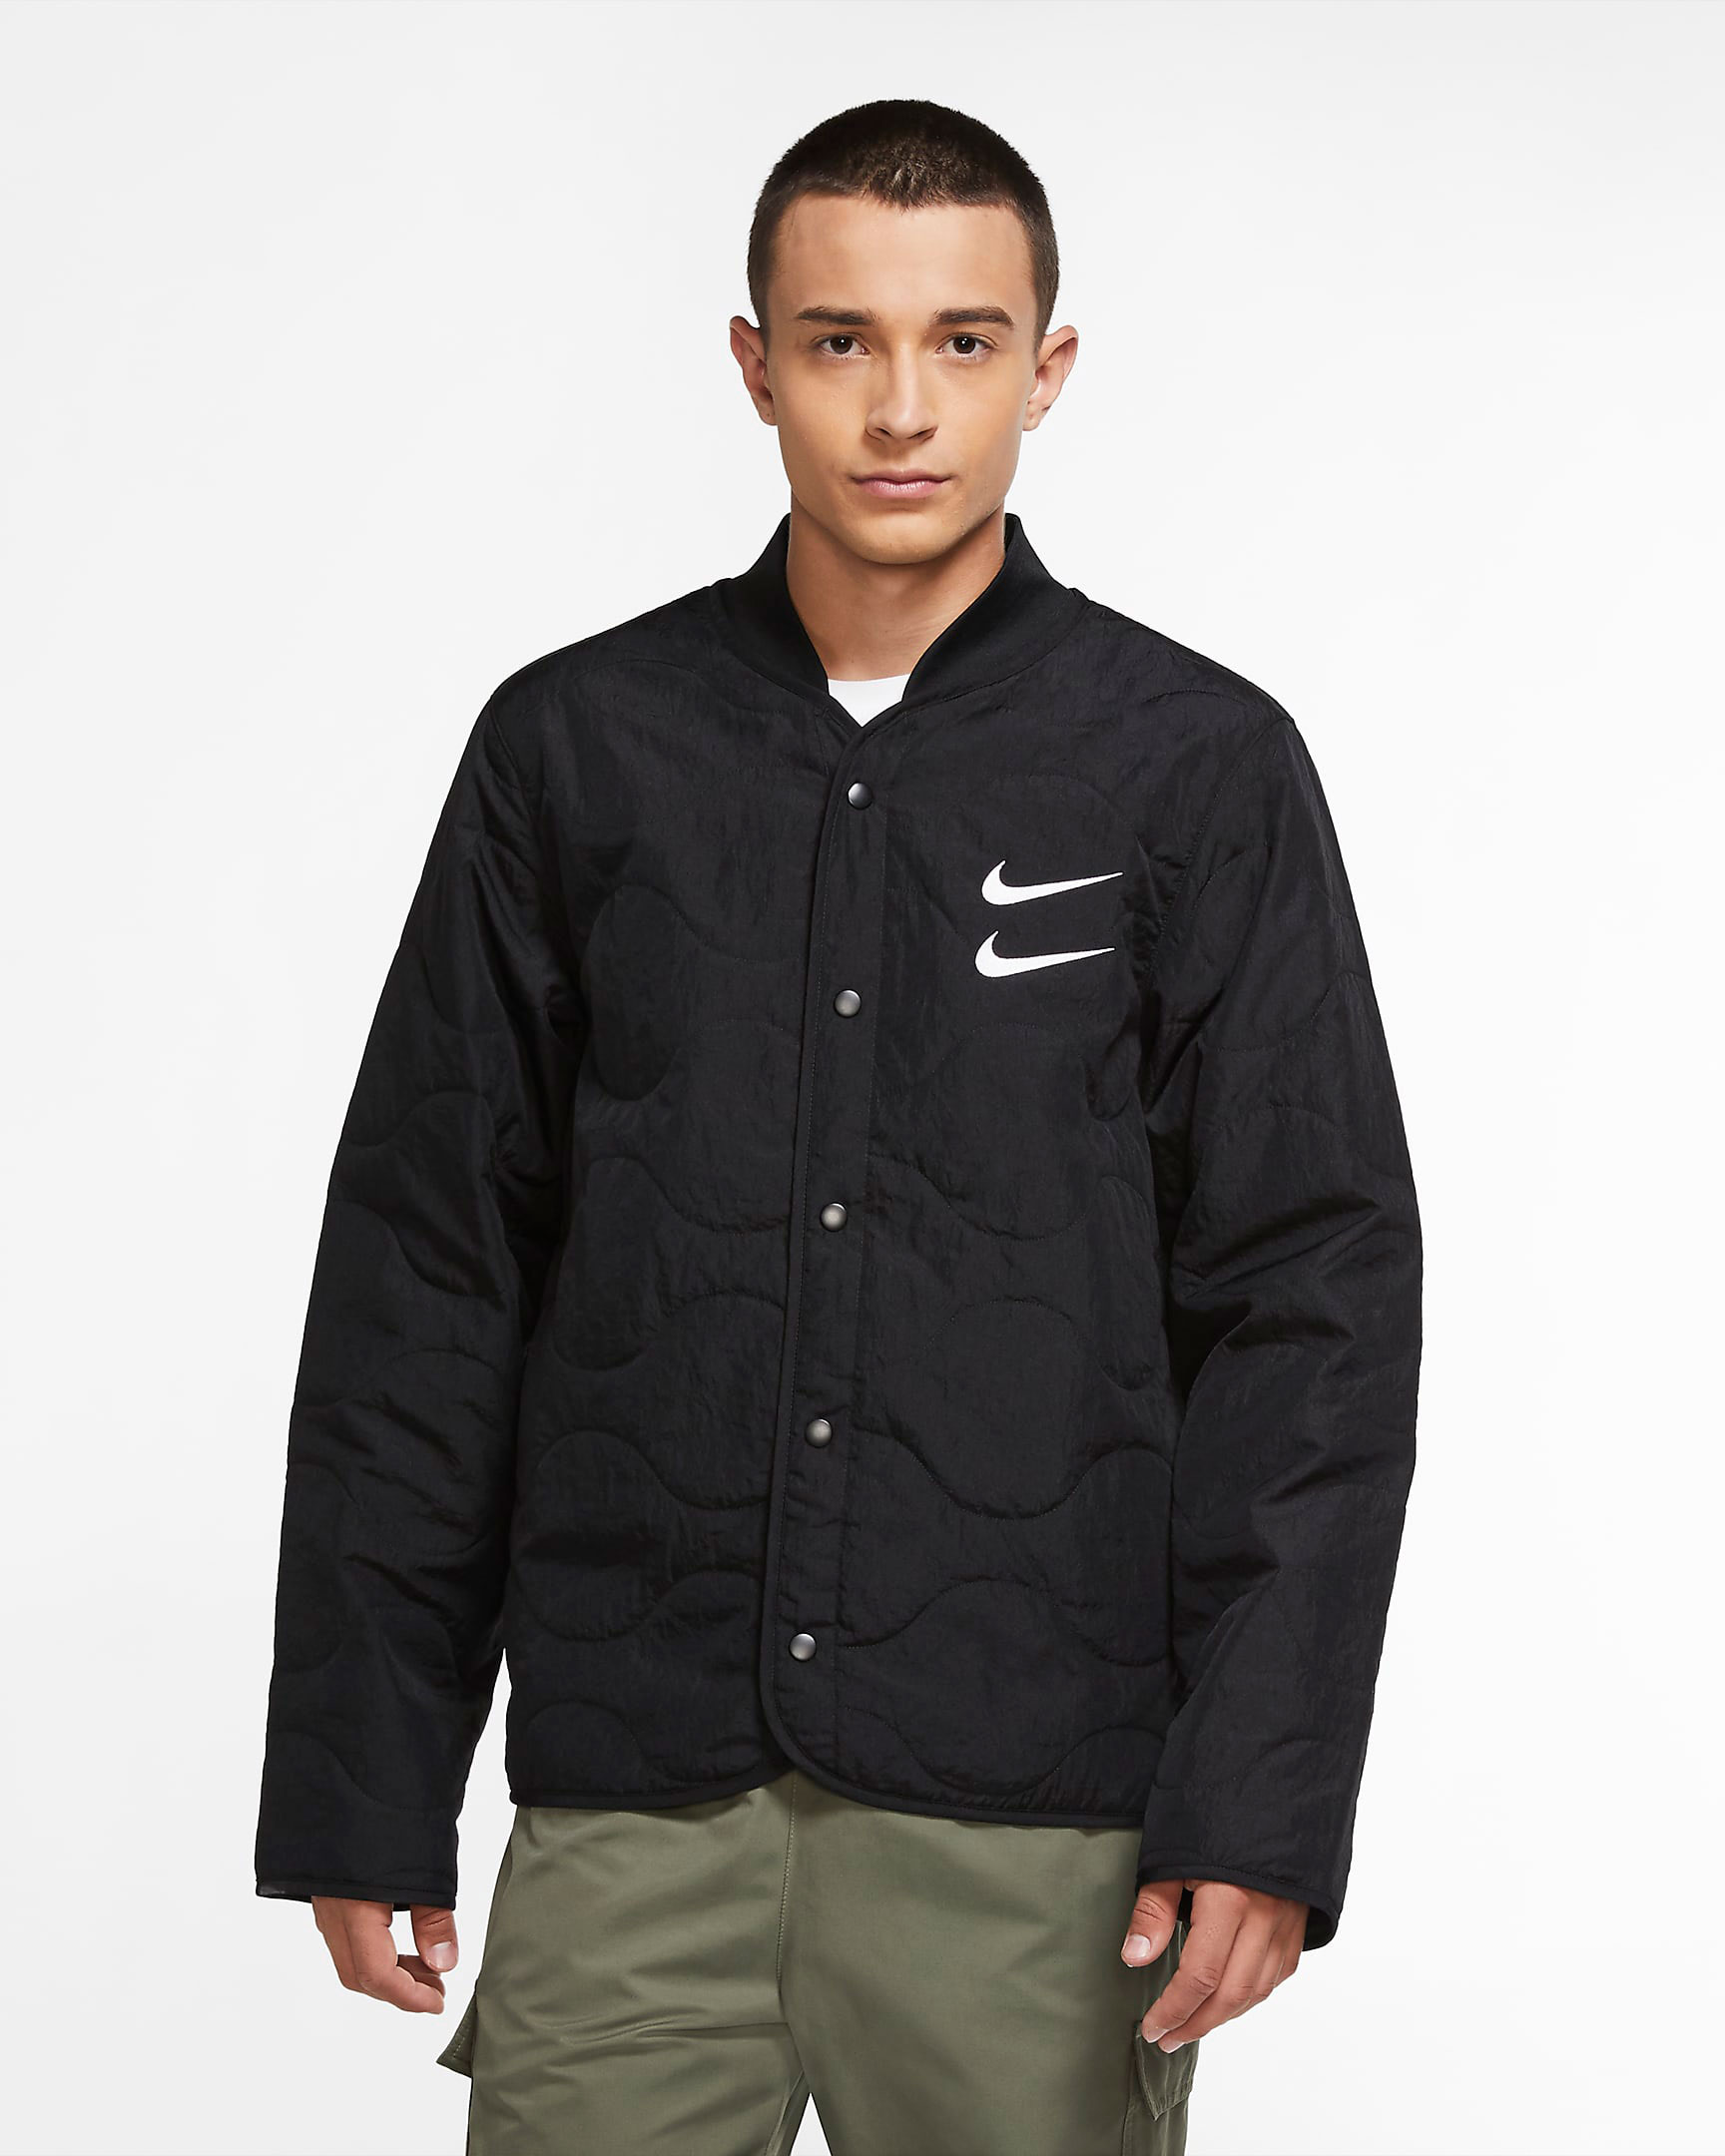 nike-foamposite-one-anthracite-blackout-jacket-match-9